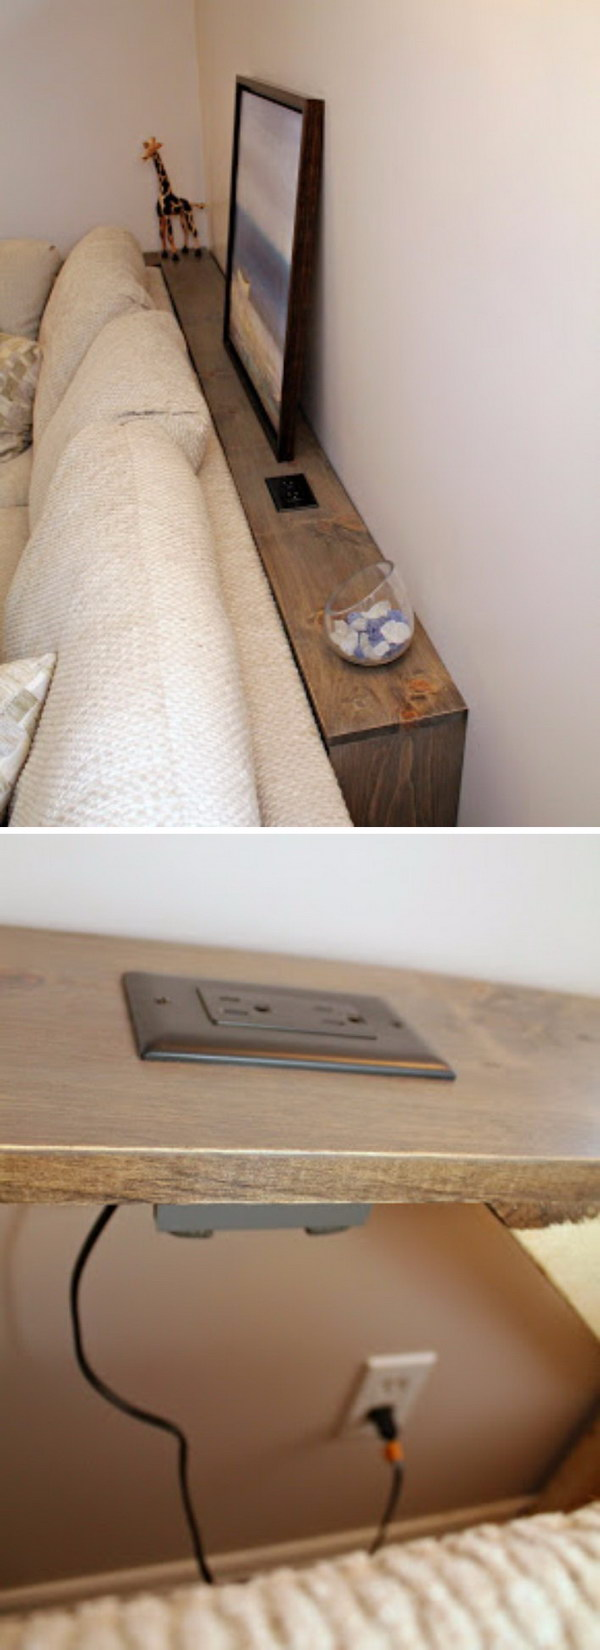 This Little DIY Wooden Table Behind The Sofa, Which Is Very Easy And  Accessible For Everyone To Make, Is All About Functionality. Its Strategic  Placement ...